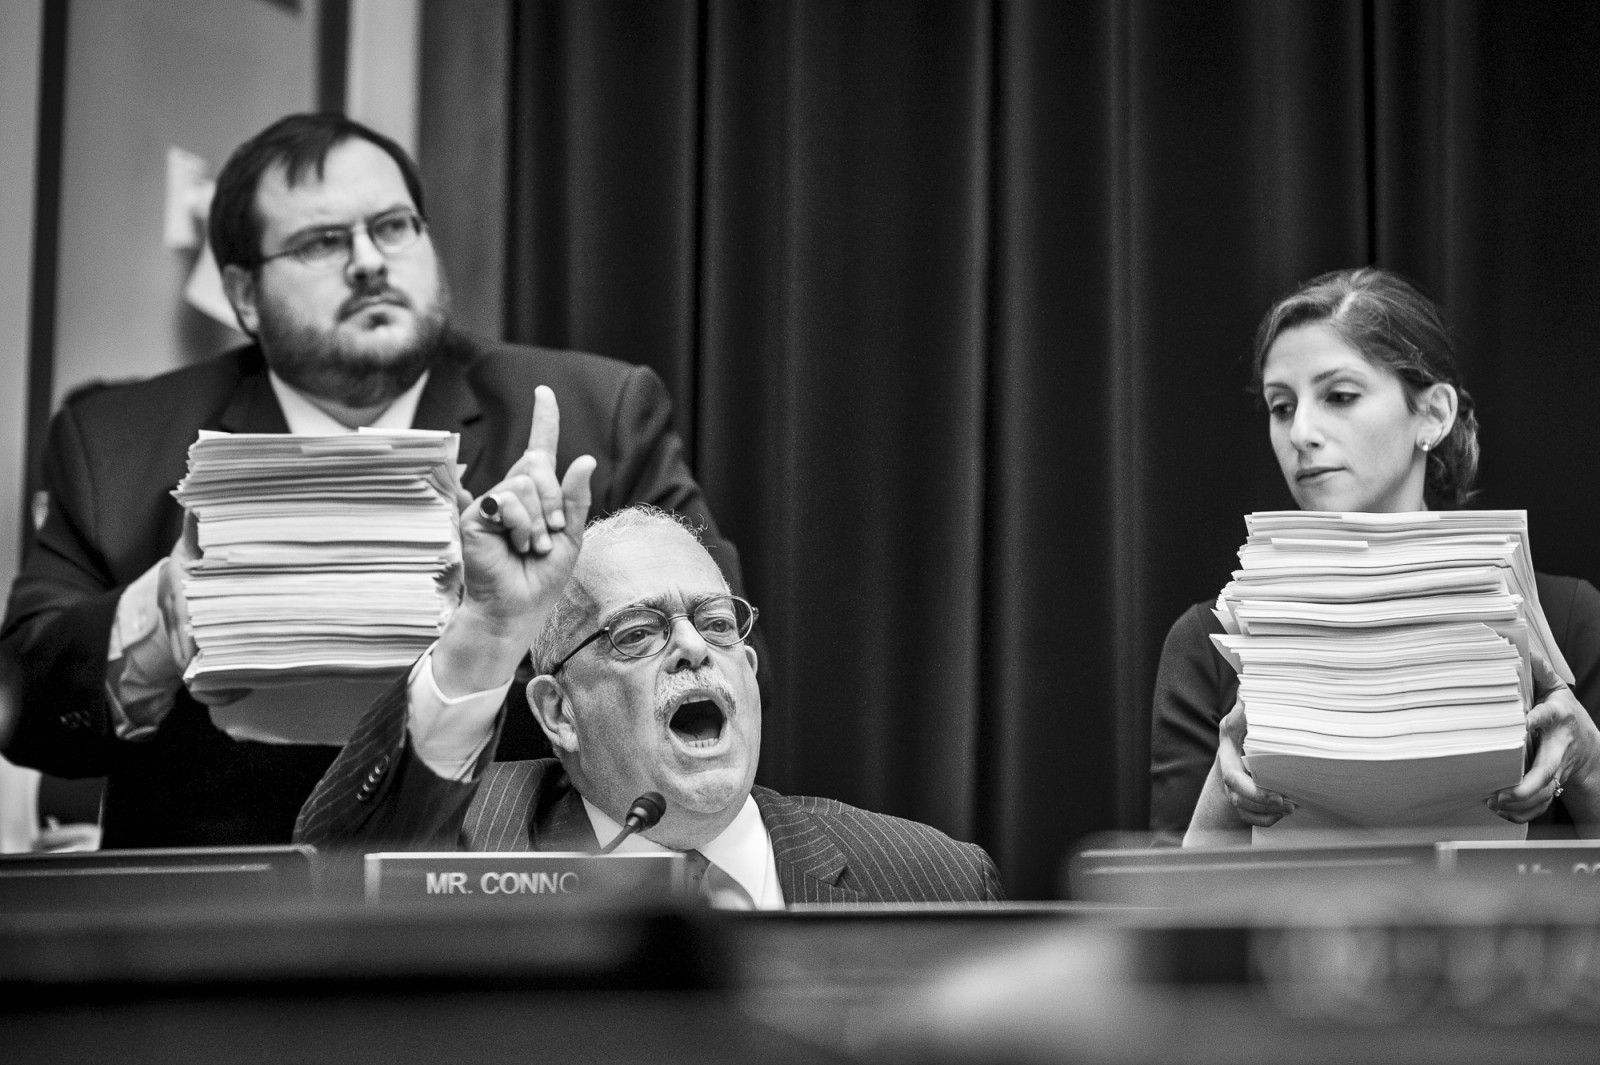 FLINT HEARING Pete Marovich